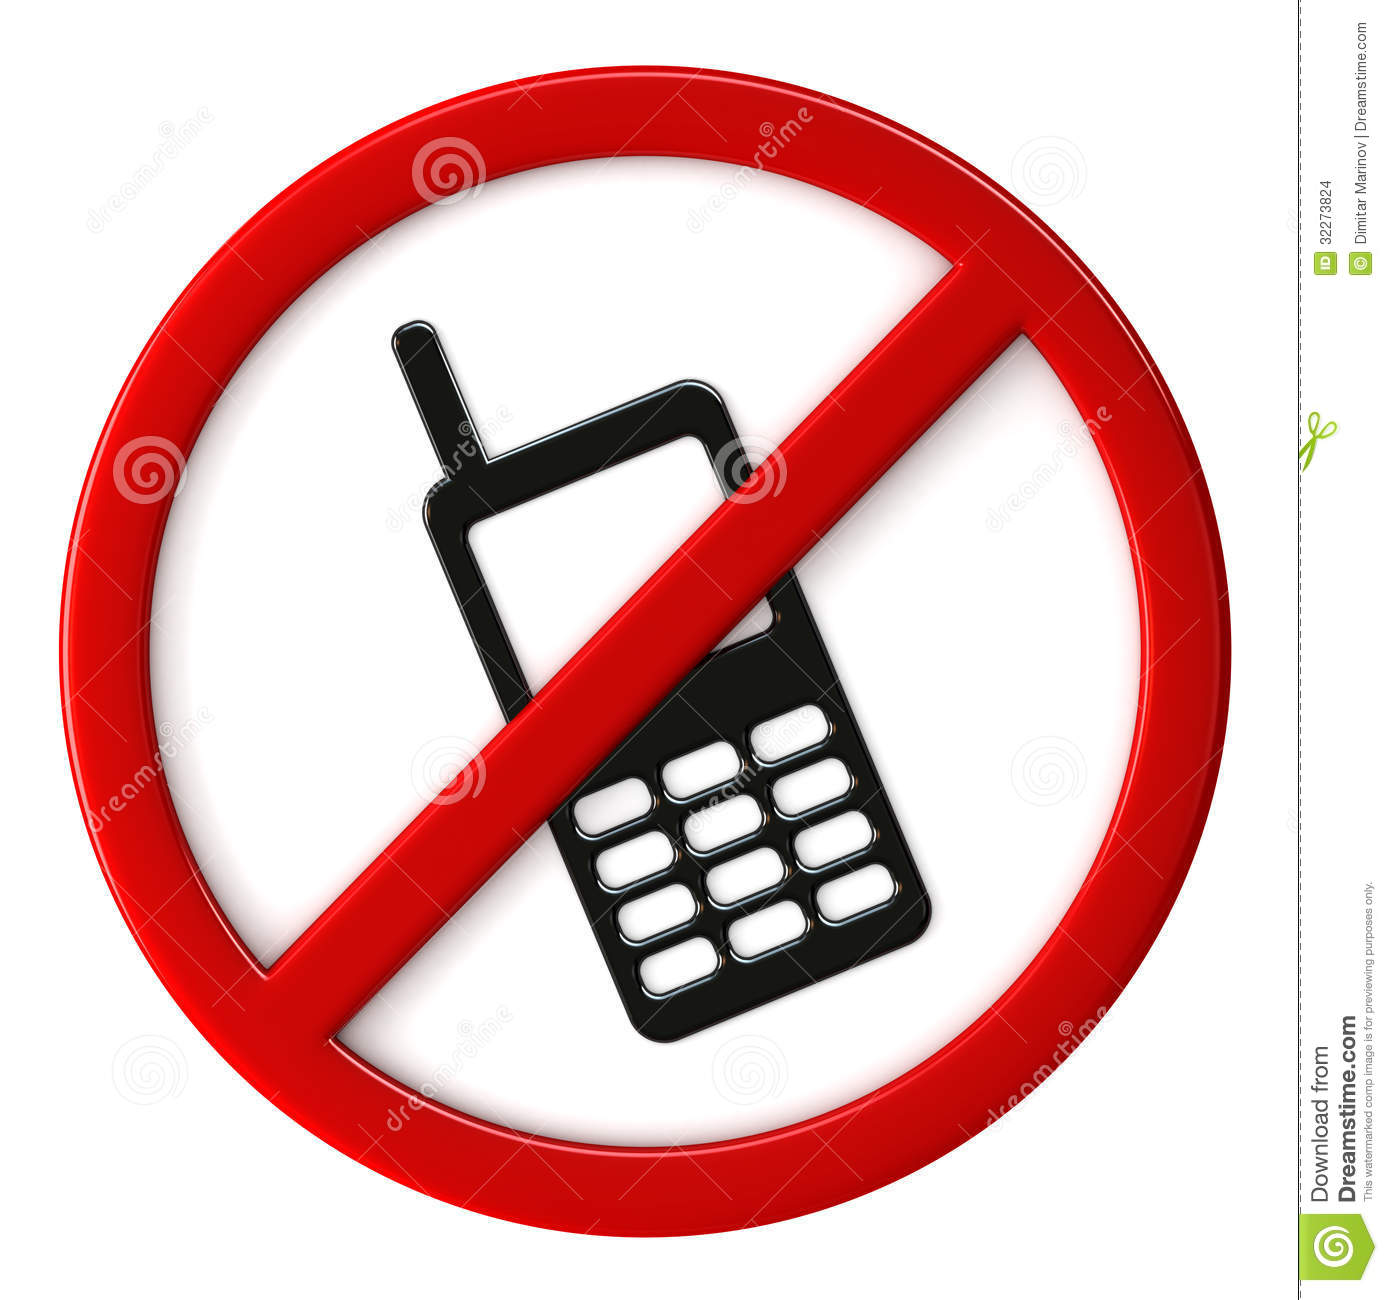 8914 Phone free clipart.